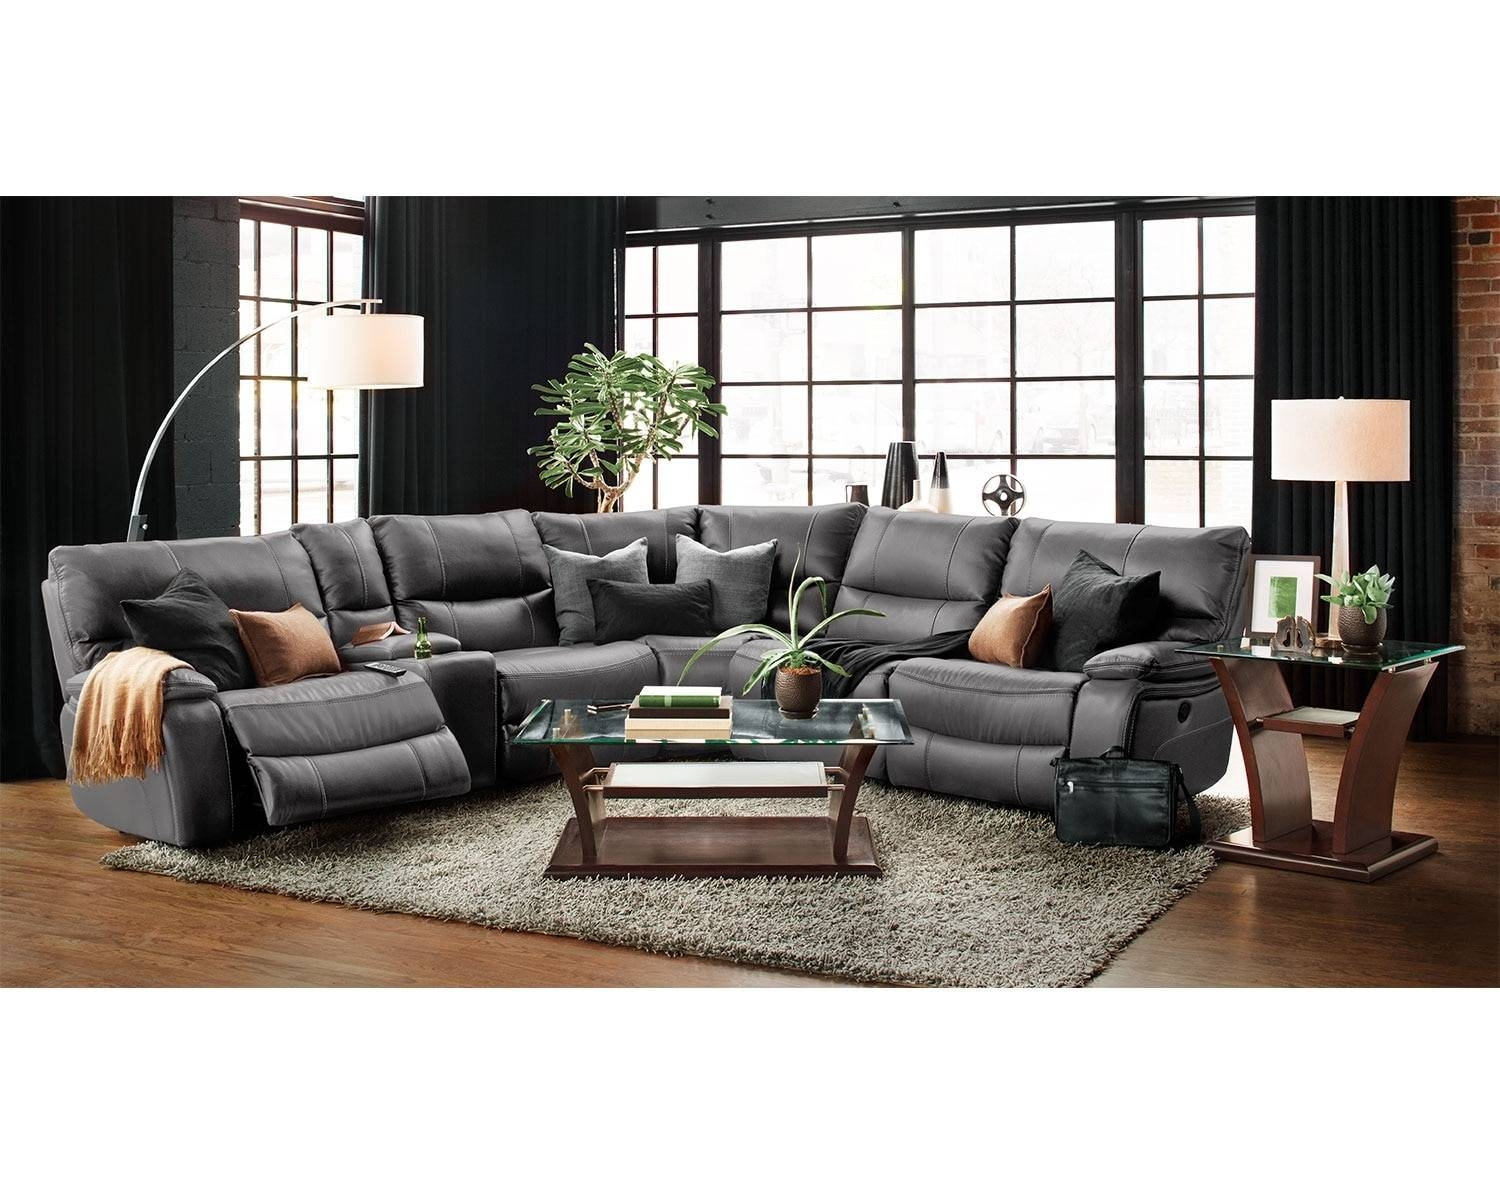 Inspirational Types Of Sectional Sofas 15 In Sectional Sofas Within Rochester Sectional Sofas (View 3 of 15)